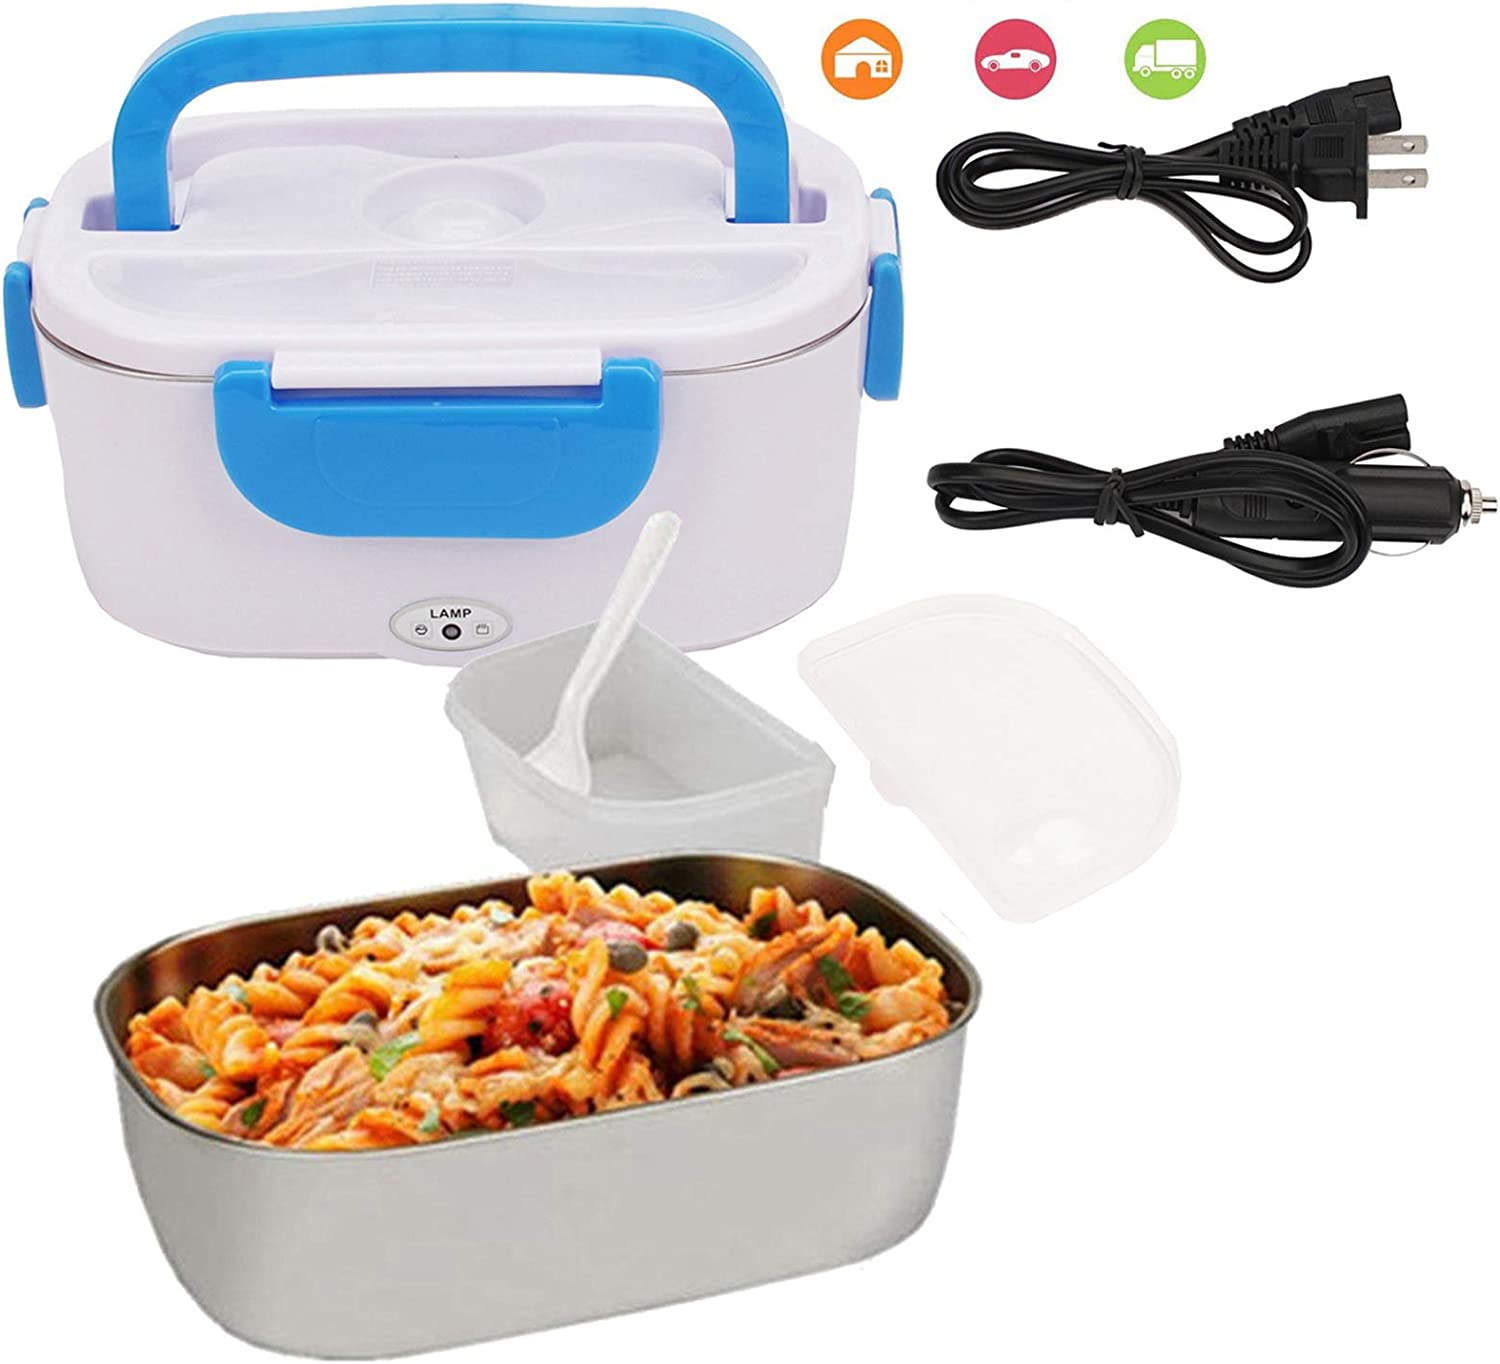 Electric Lunch Box For Toursion Portable Food Heater 110V & 12V 40W, 2 in 1 for Car/Truck and Work Removable Stainless Steel Portable Food Warmer 1.5L, Spoon and 2 Compartments Included -Blue